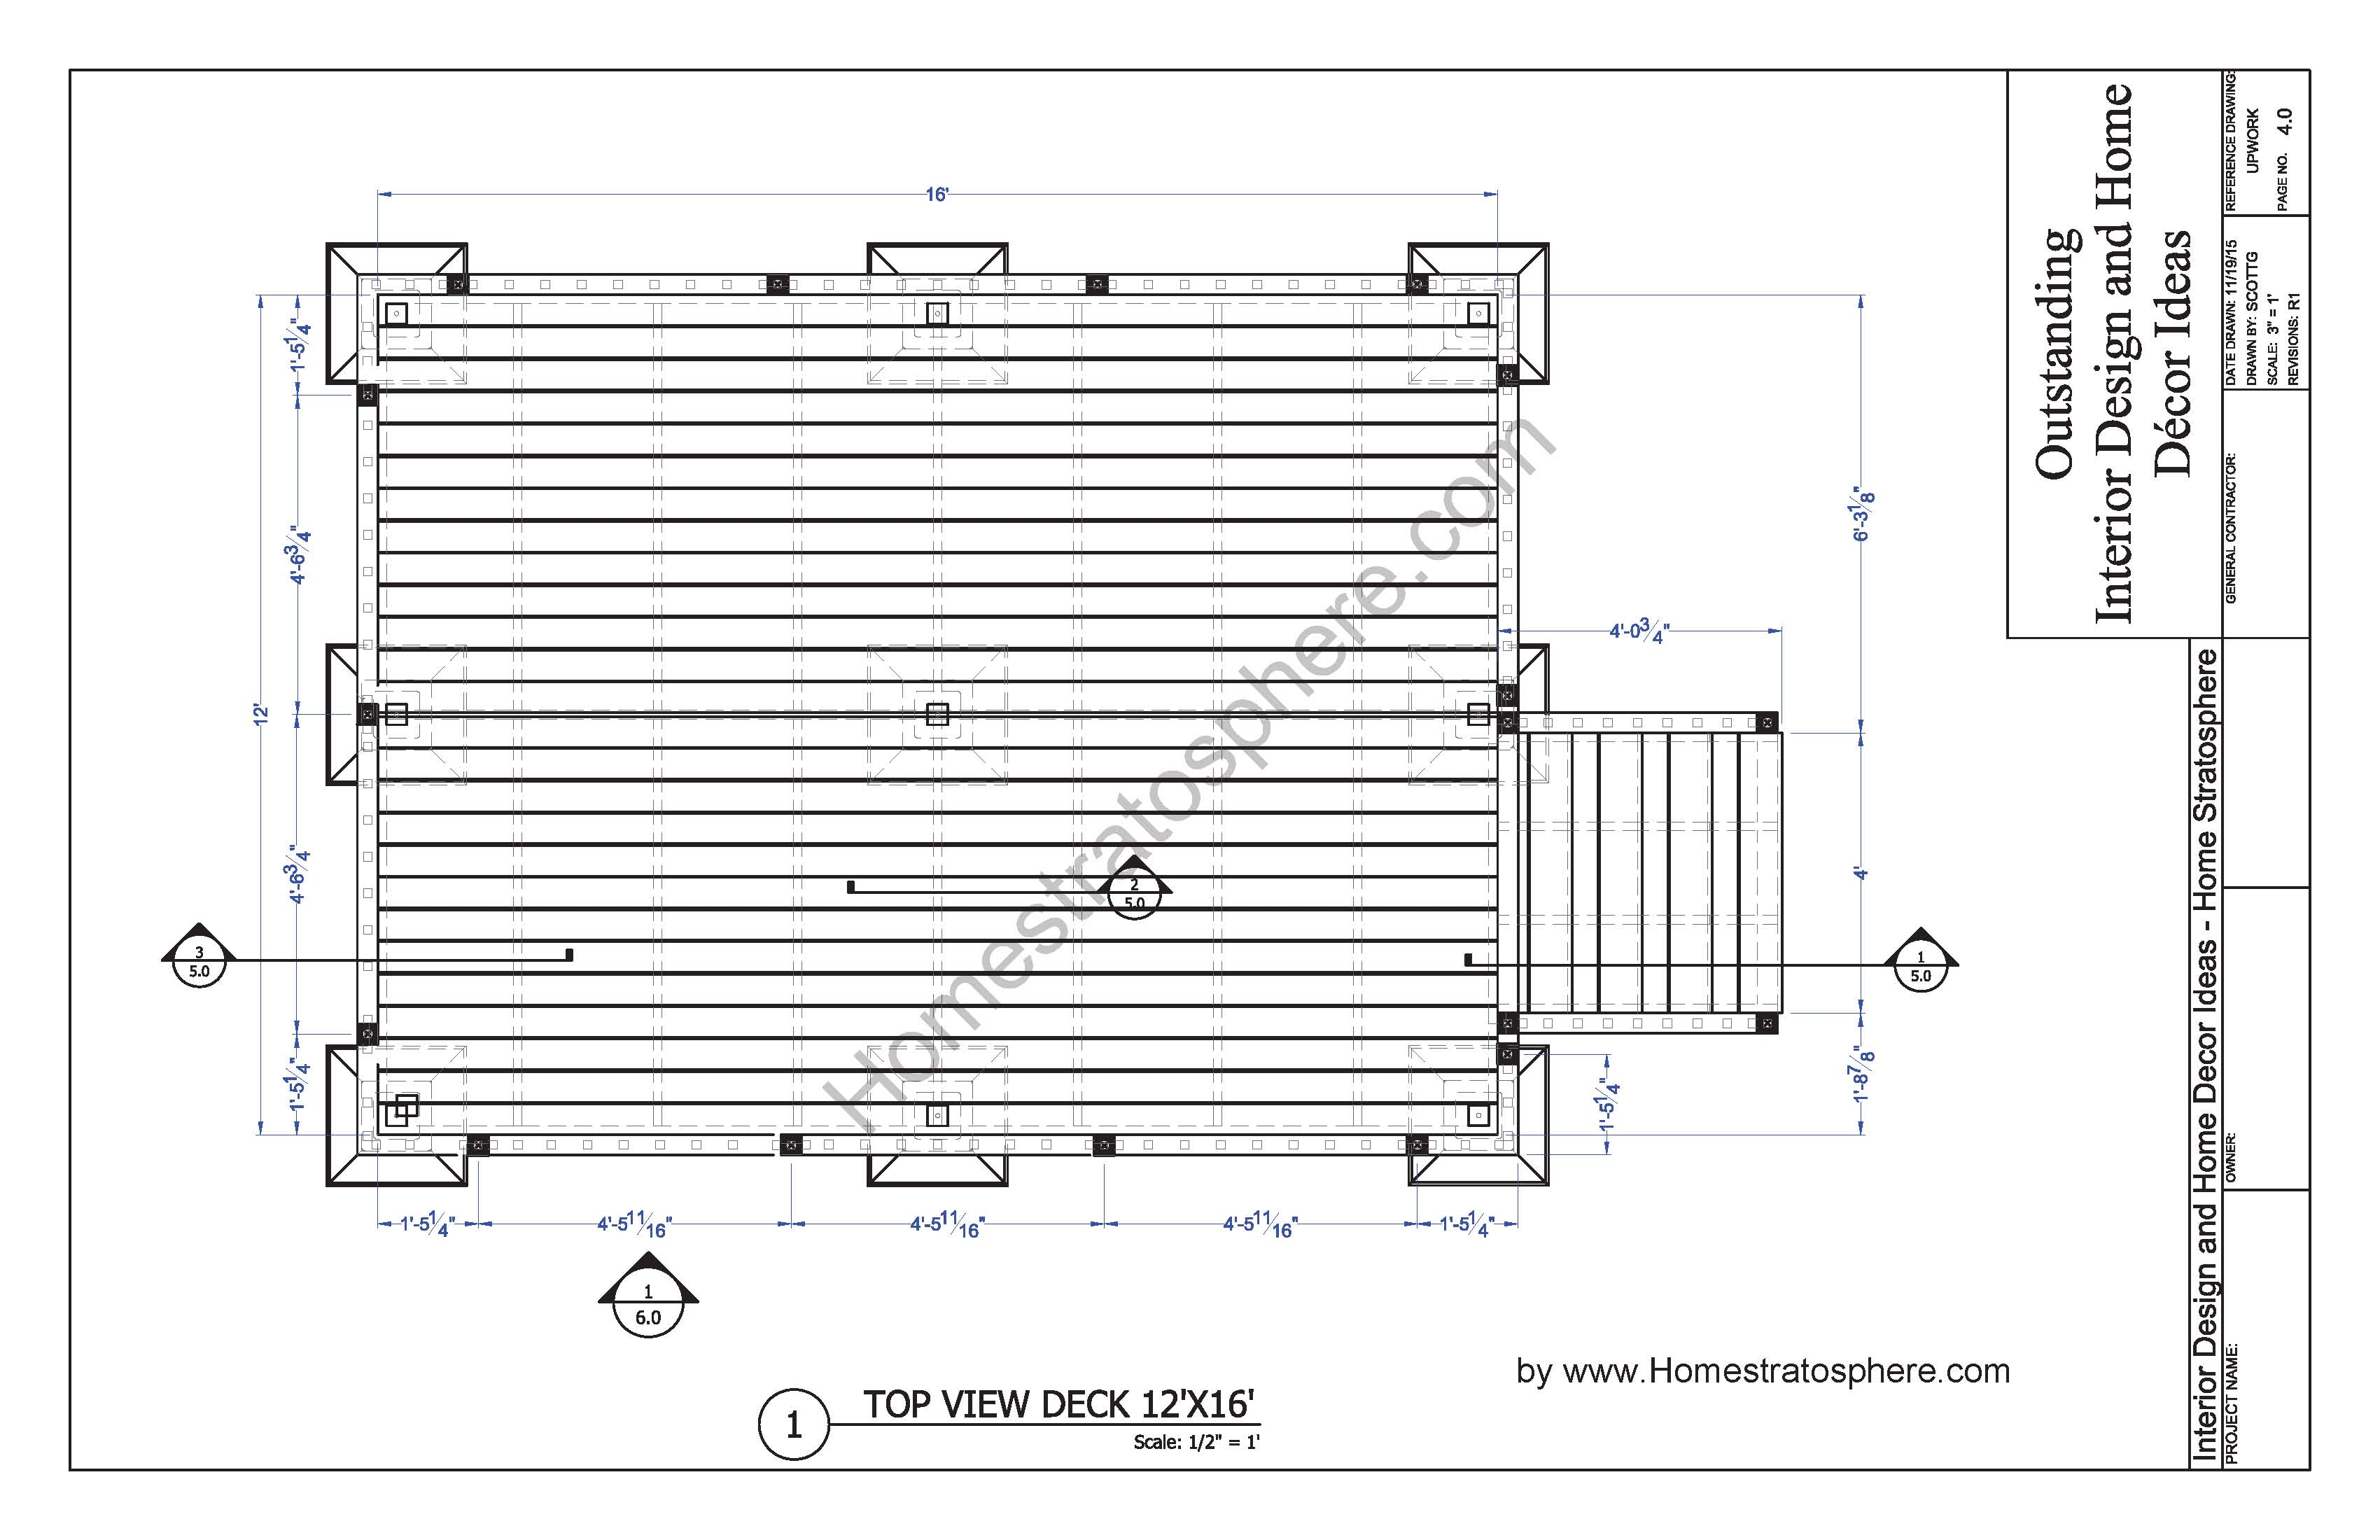 Free 12 39 x 16 39 deck plan blueprint with pdf document for 12x16 deck plans